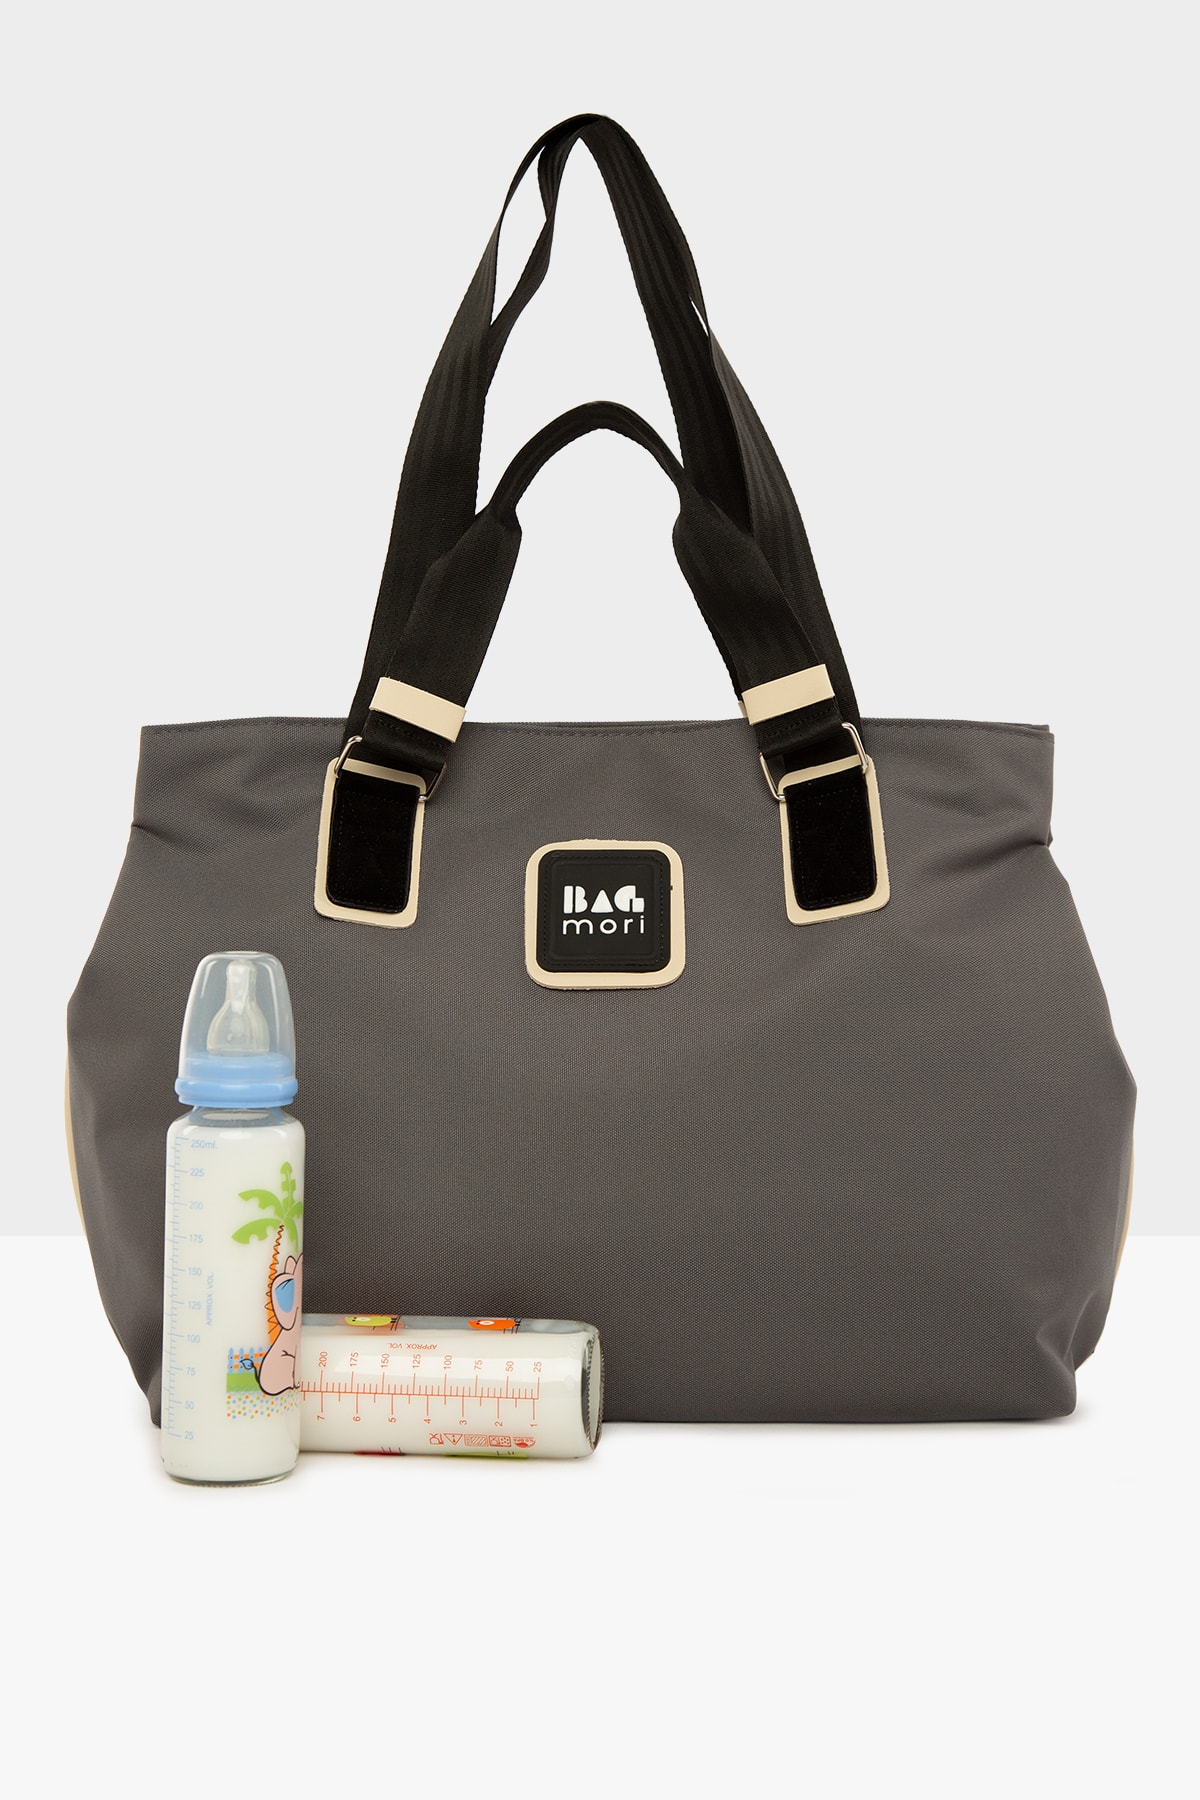 Grey Women's Garnished Mother Baby Care Bag with Snap Fastener for mom lunch bag for kids breast pum